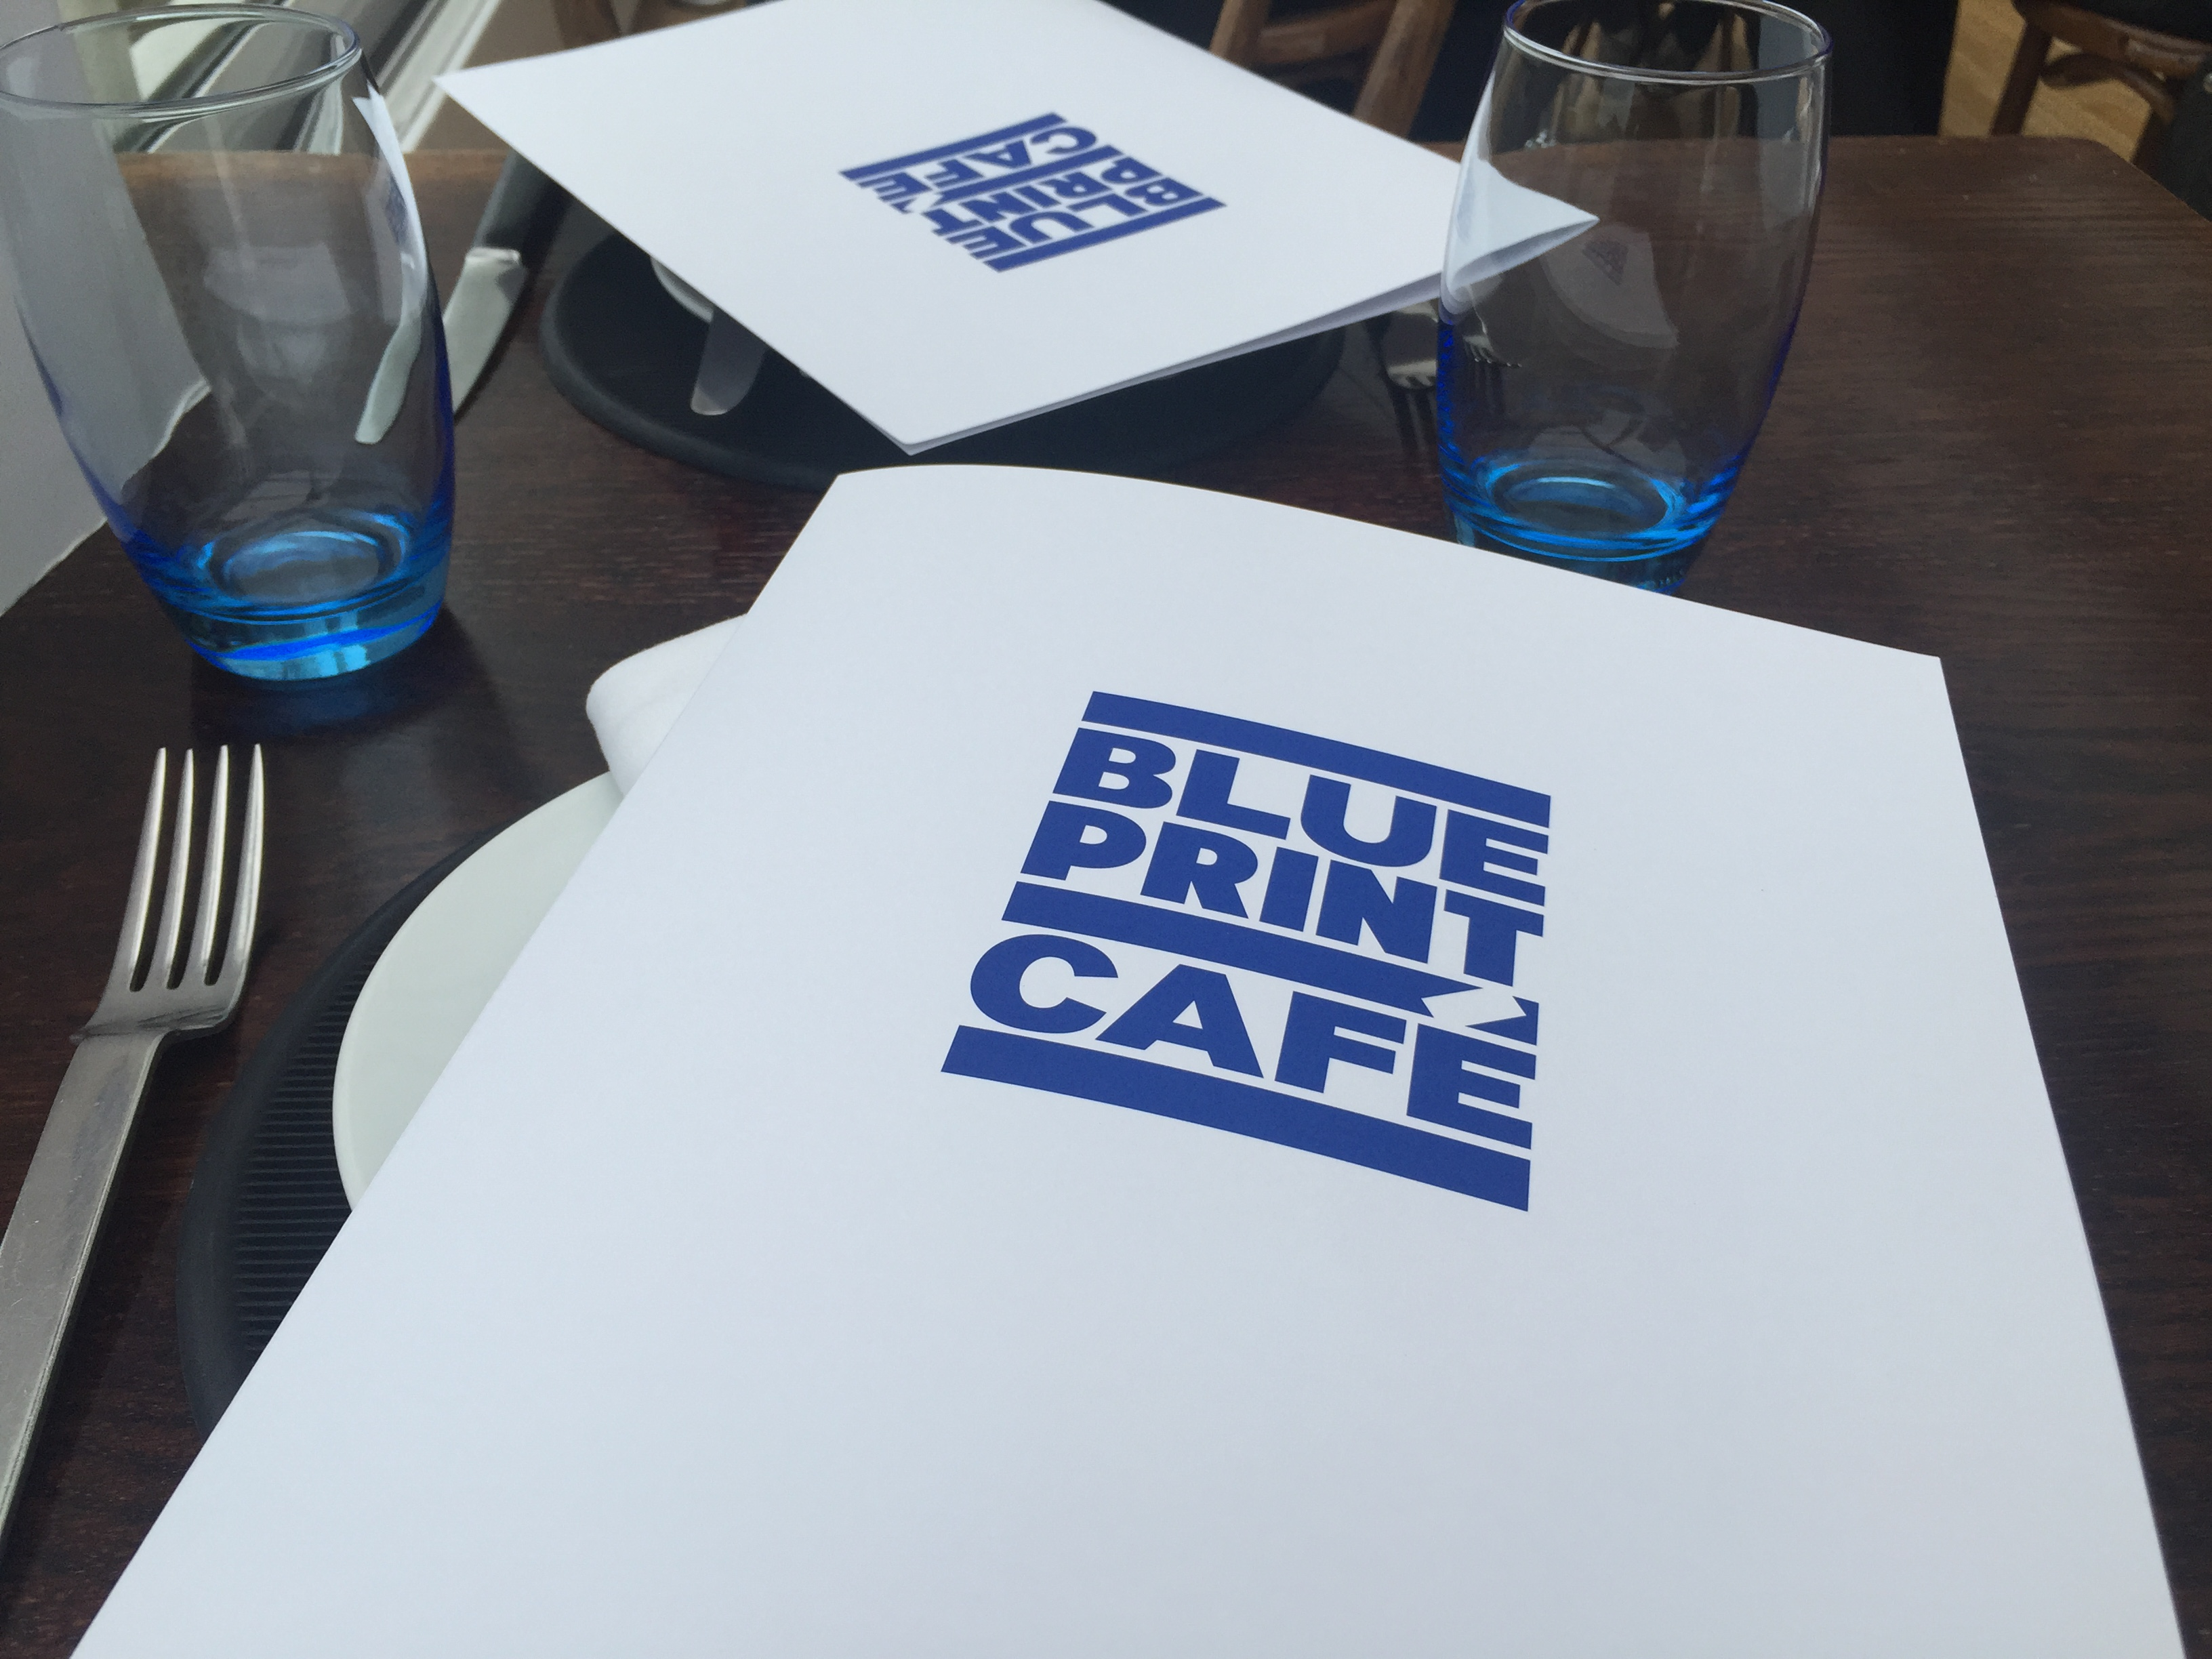 The blueprint cafe saturday brunch dining in design heaven its the blueprint caf has added a saturday brunch menu to its offering serving up breakfast classics and light meals alongside its already popular menu of malvernweather Choice Image